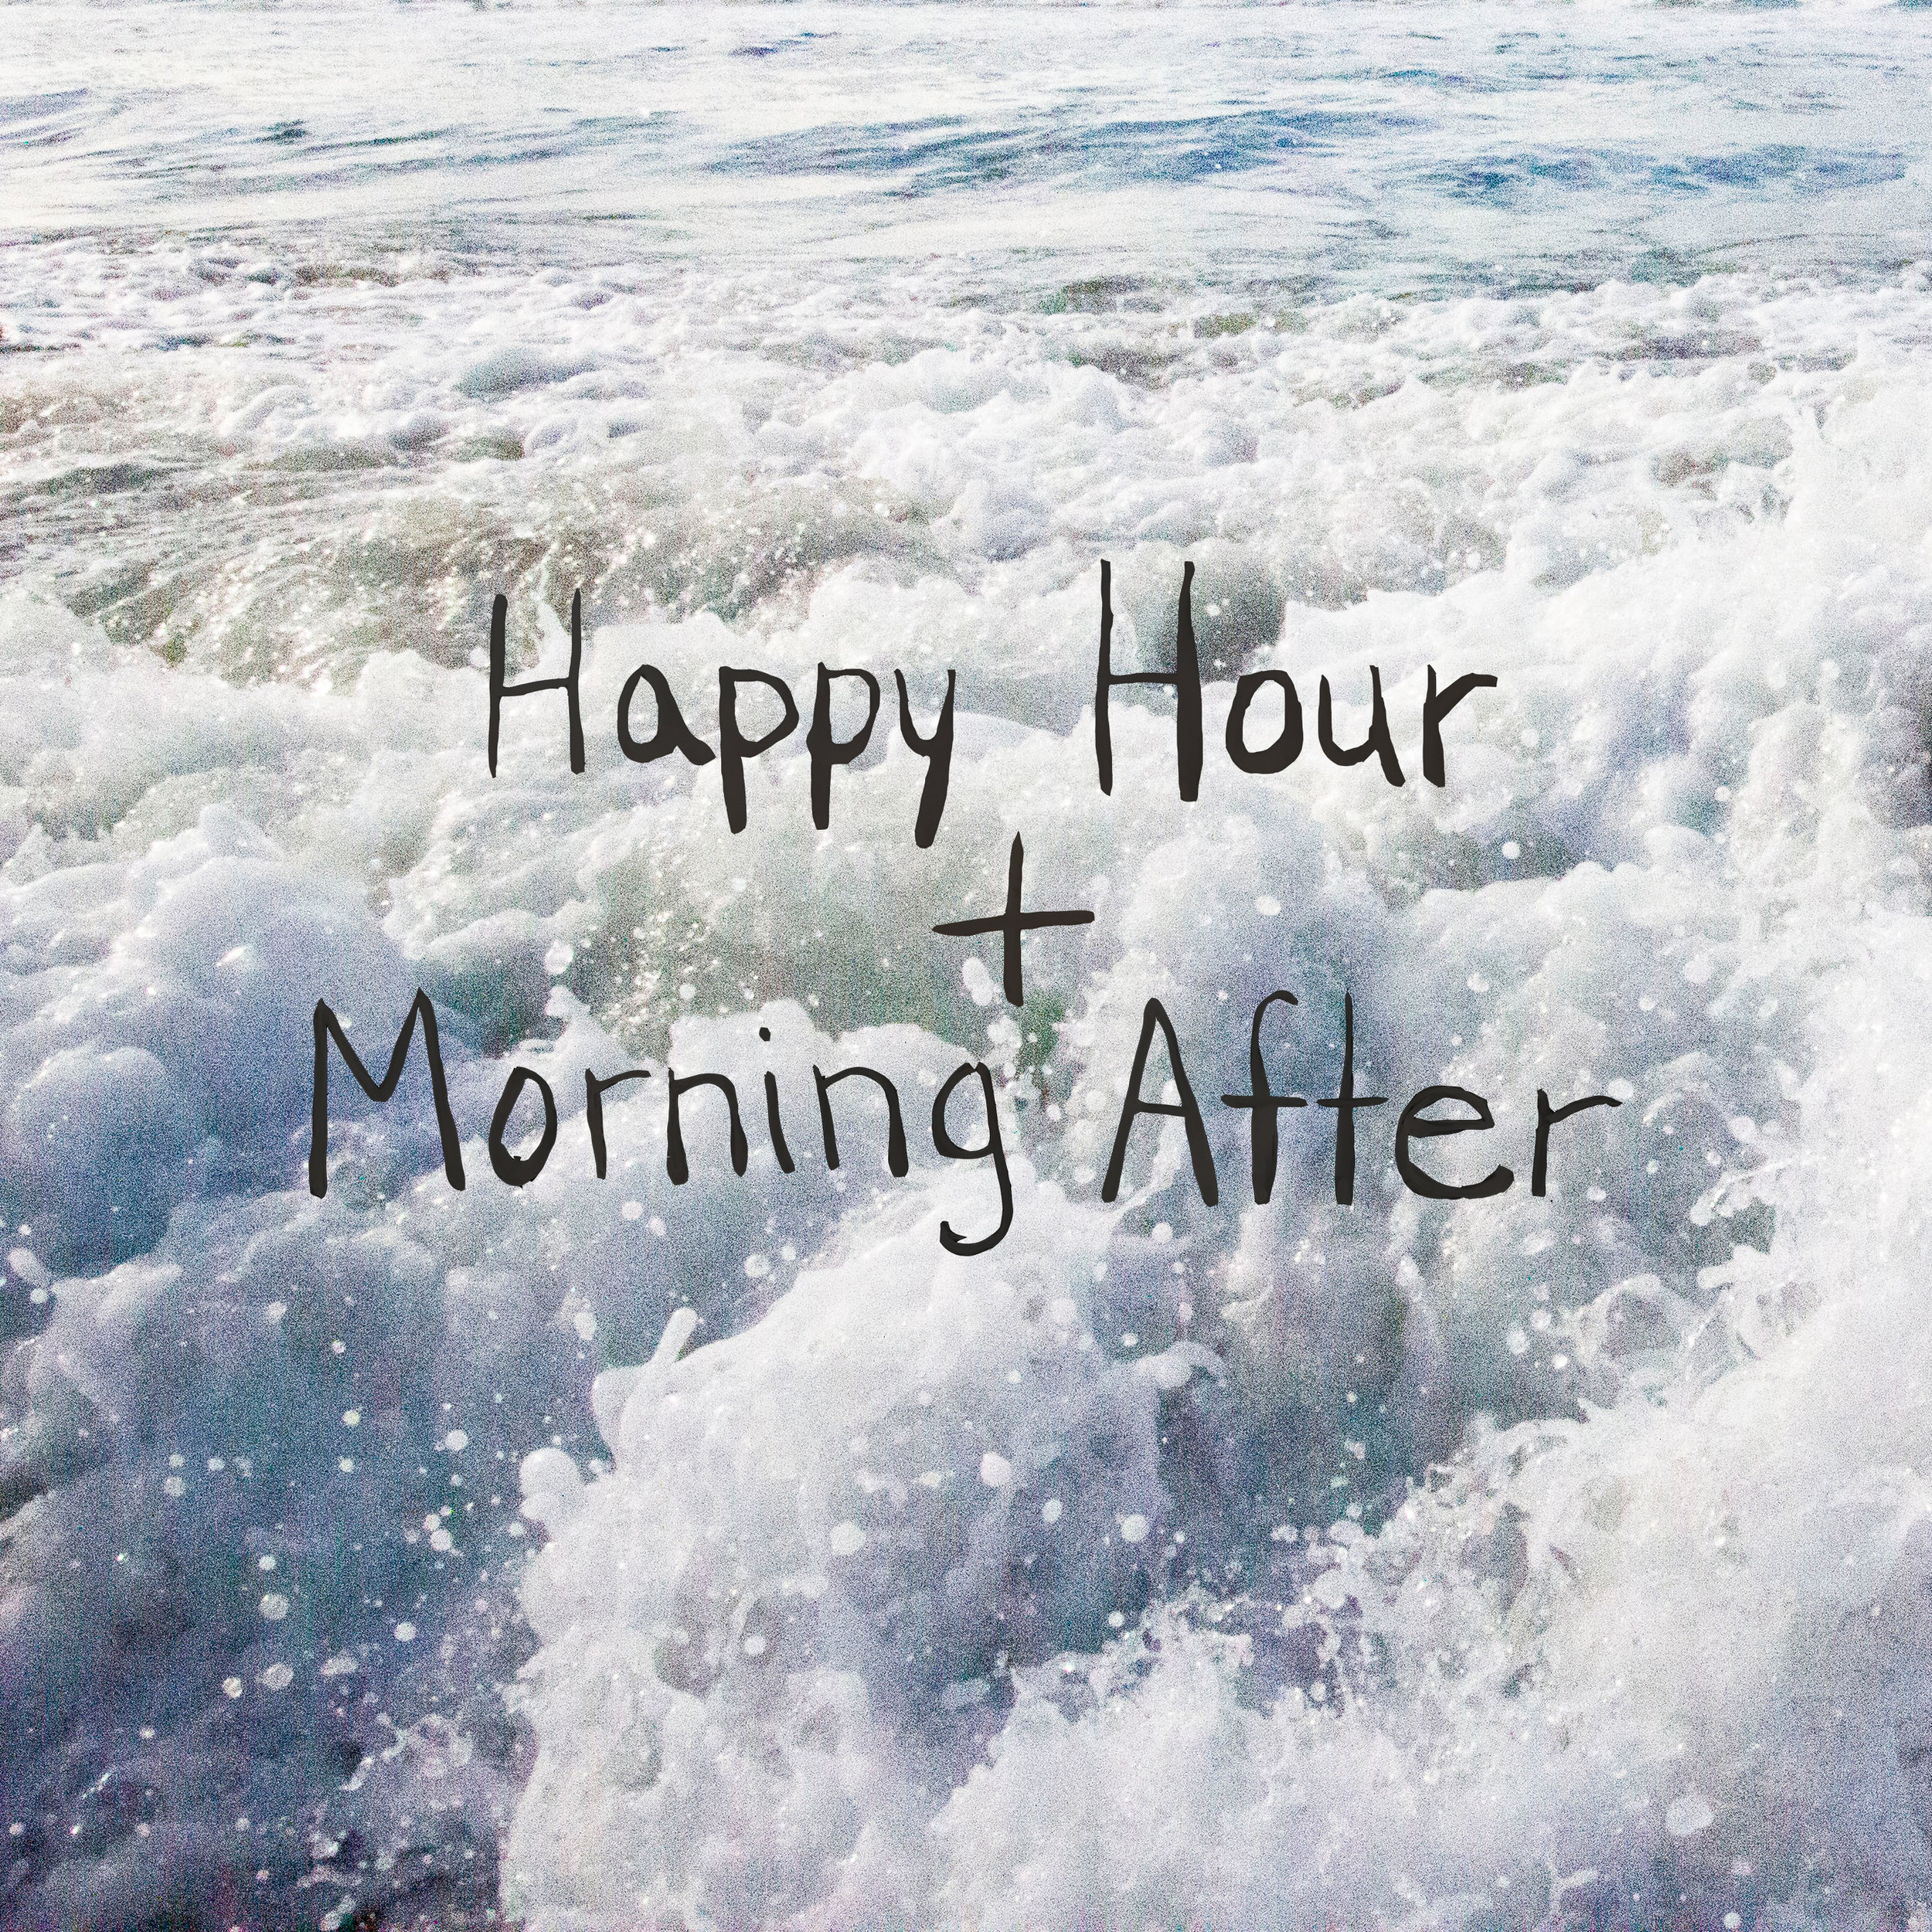 Happy Hour Morning After